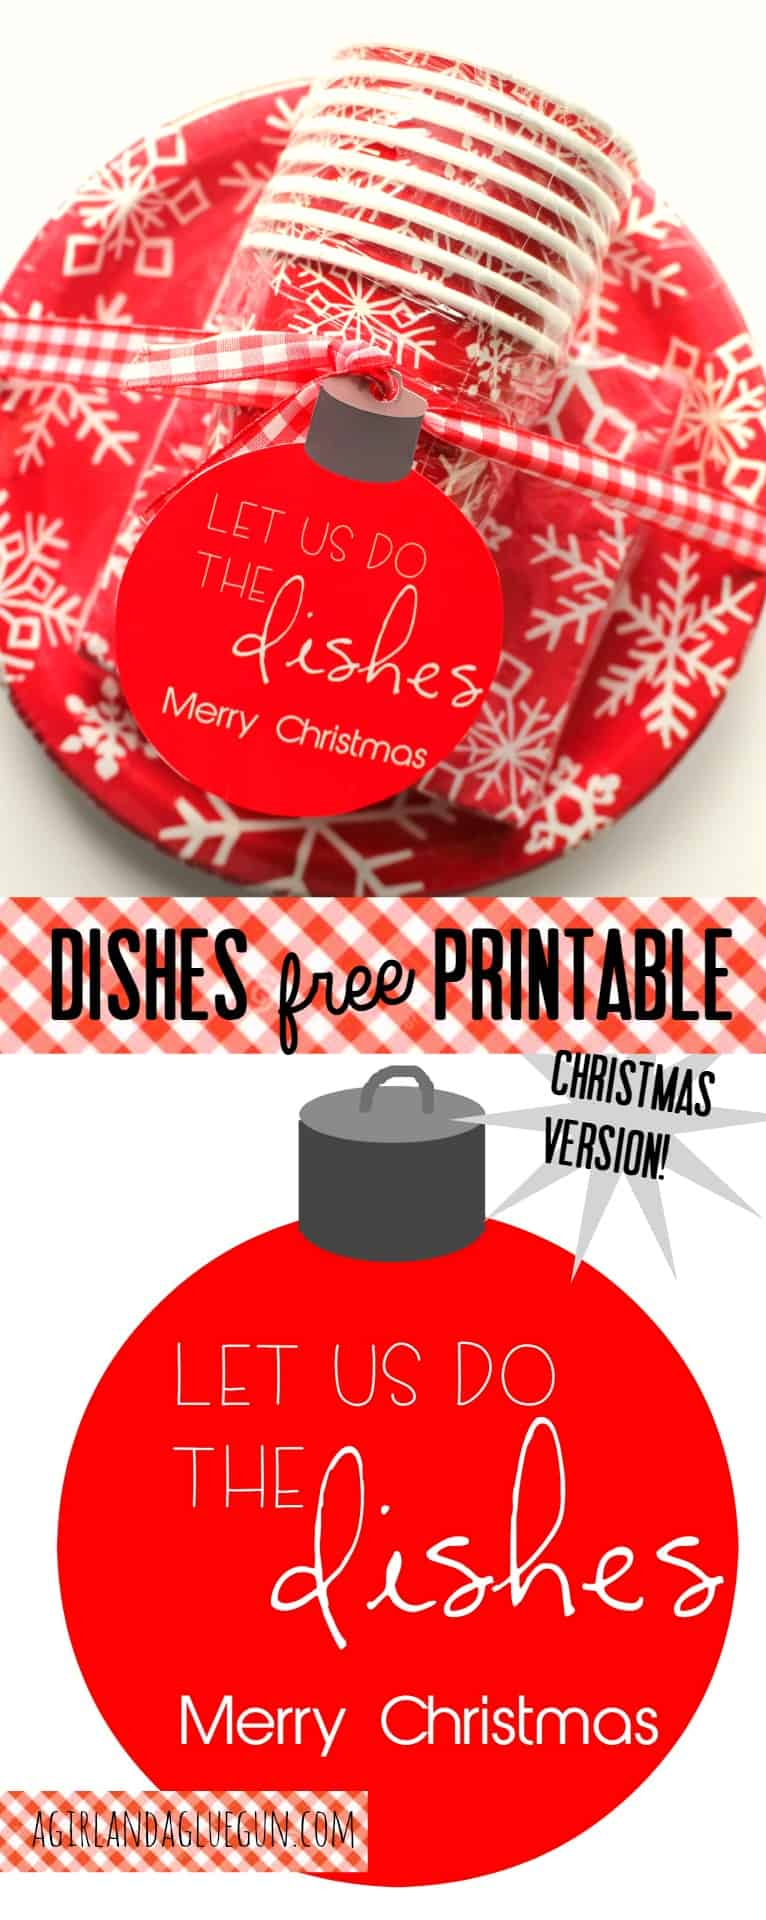 let us help with the dishes. christmas neighbor gift idea!